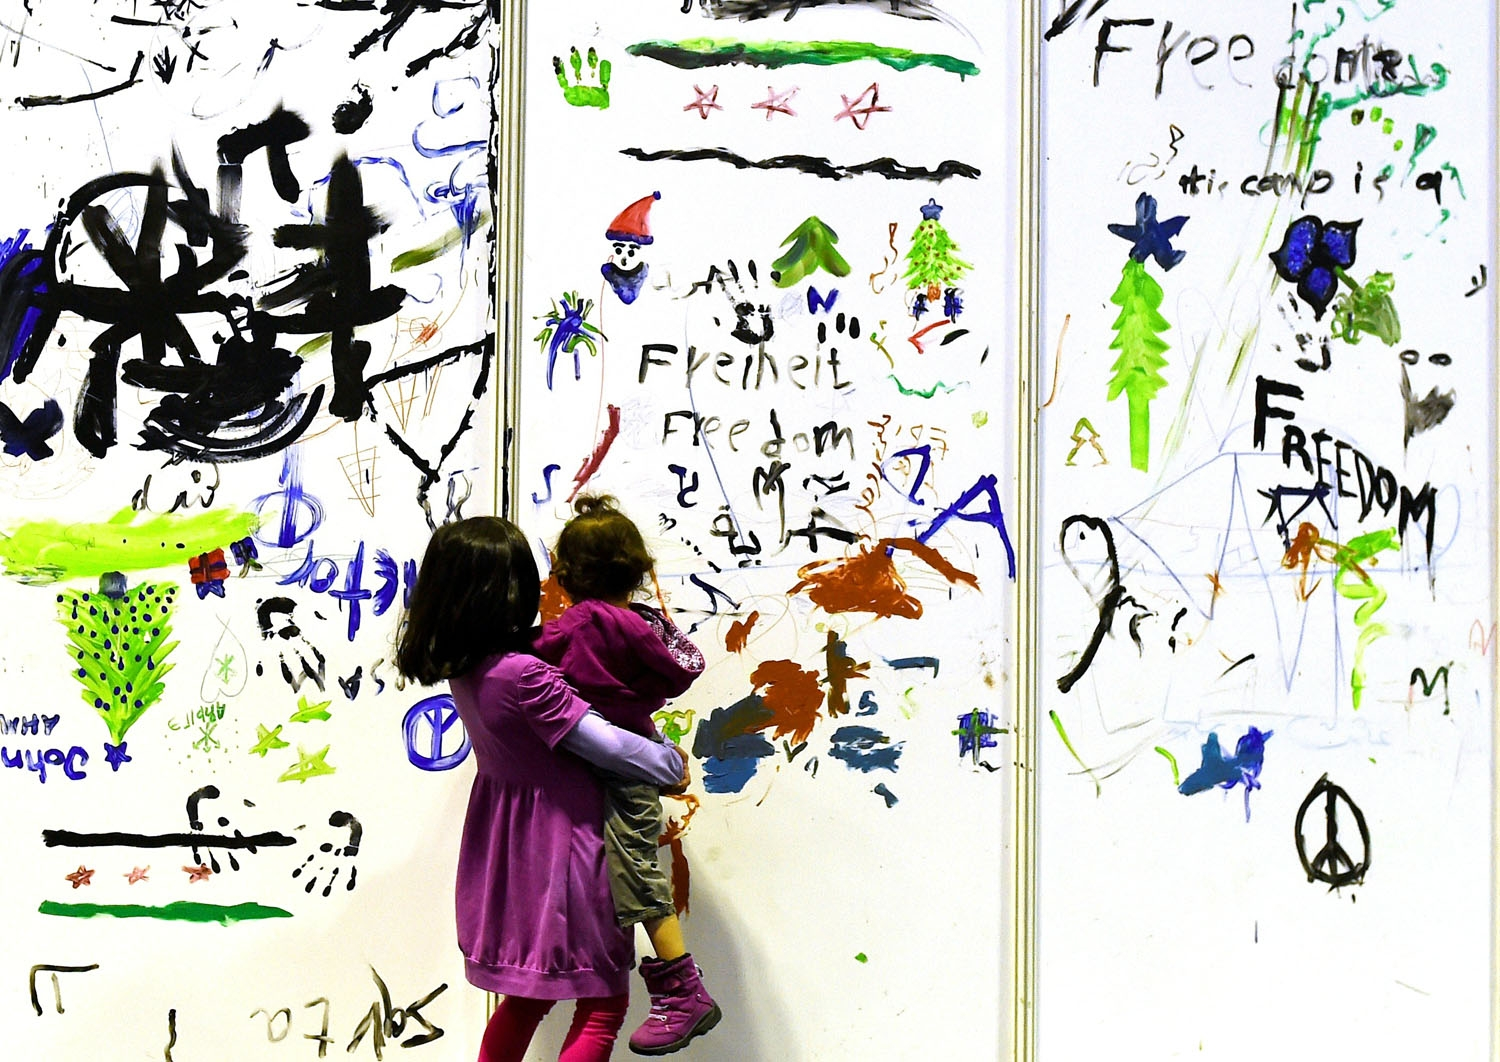 Young refugees pass by a painted wall of a temporary bedroom at a refugee accomodation hosted in a hangar of the former Tempelhof airport in Berlin on December 26, 2015